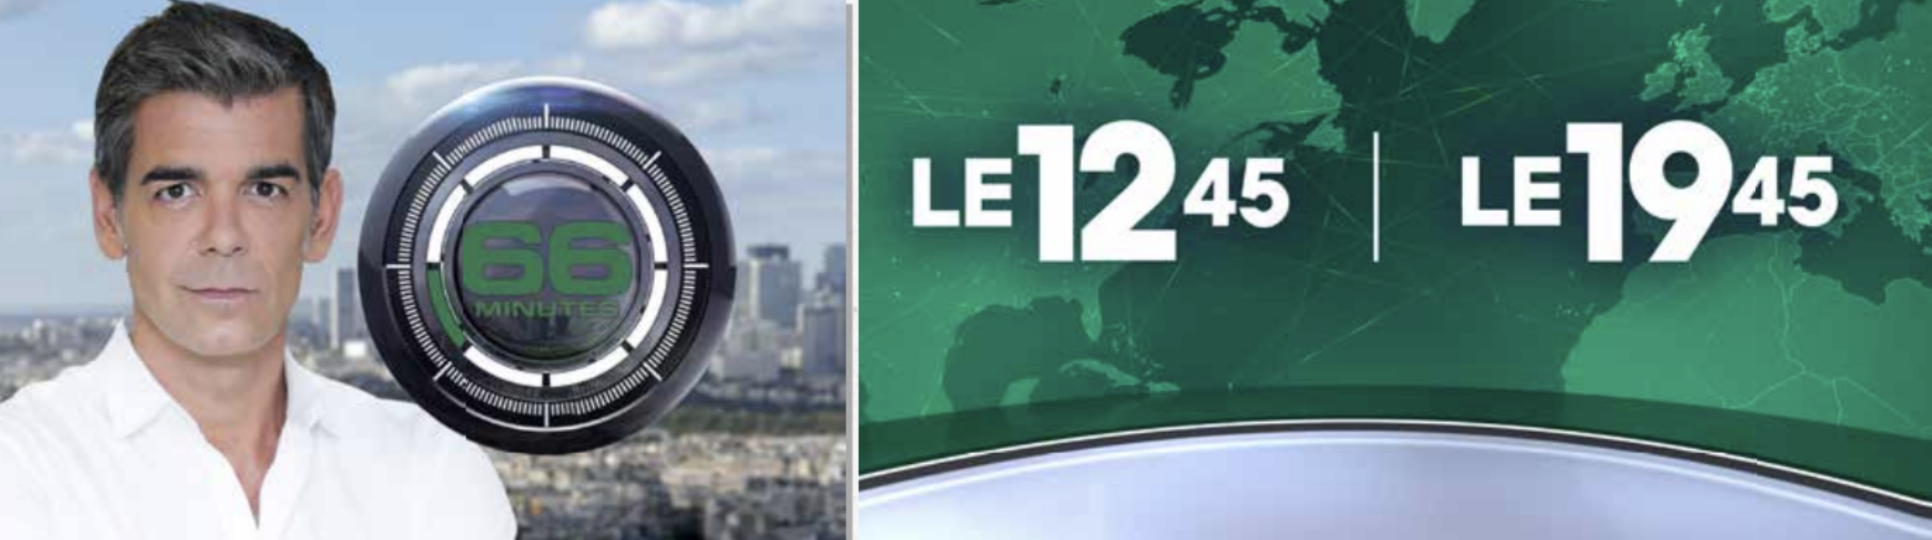 Groupe M6 - semaine green - programme - infos